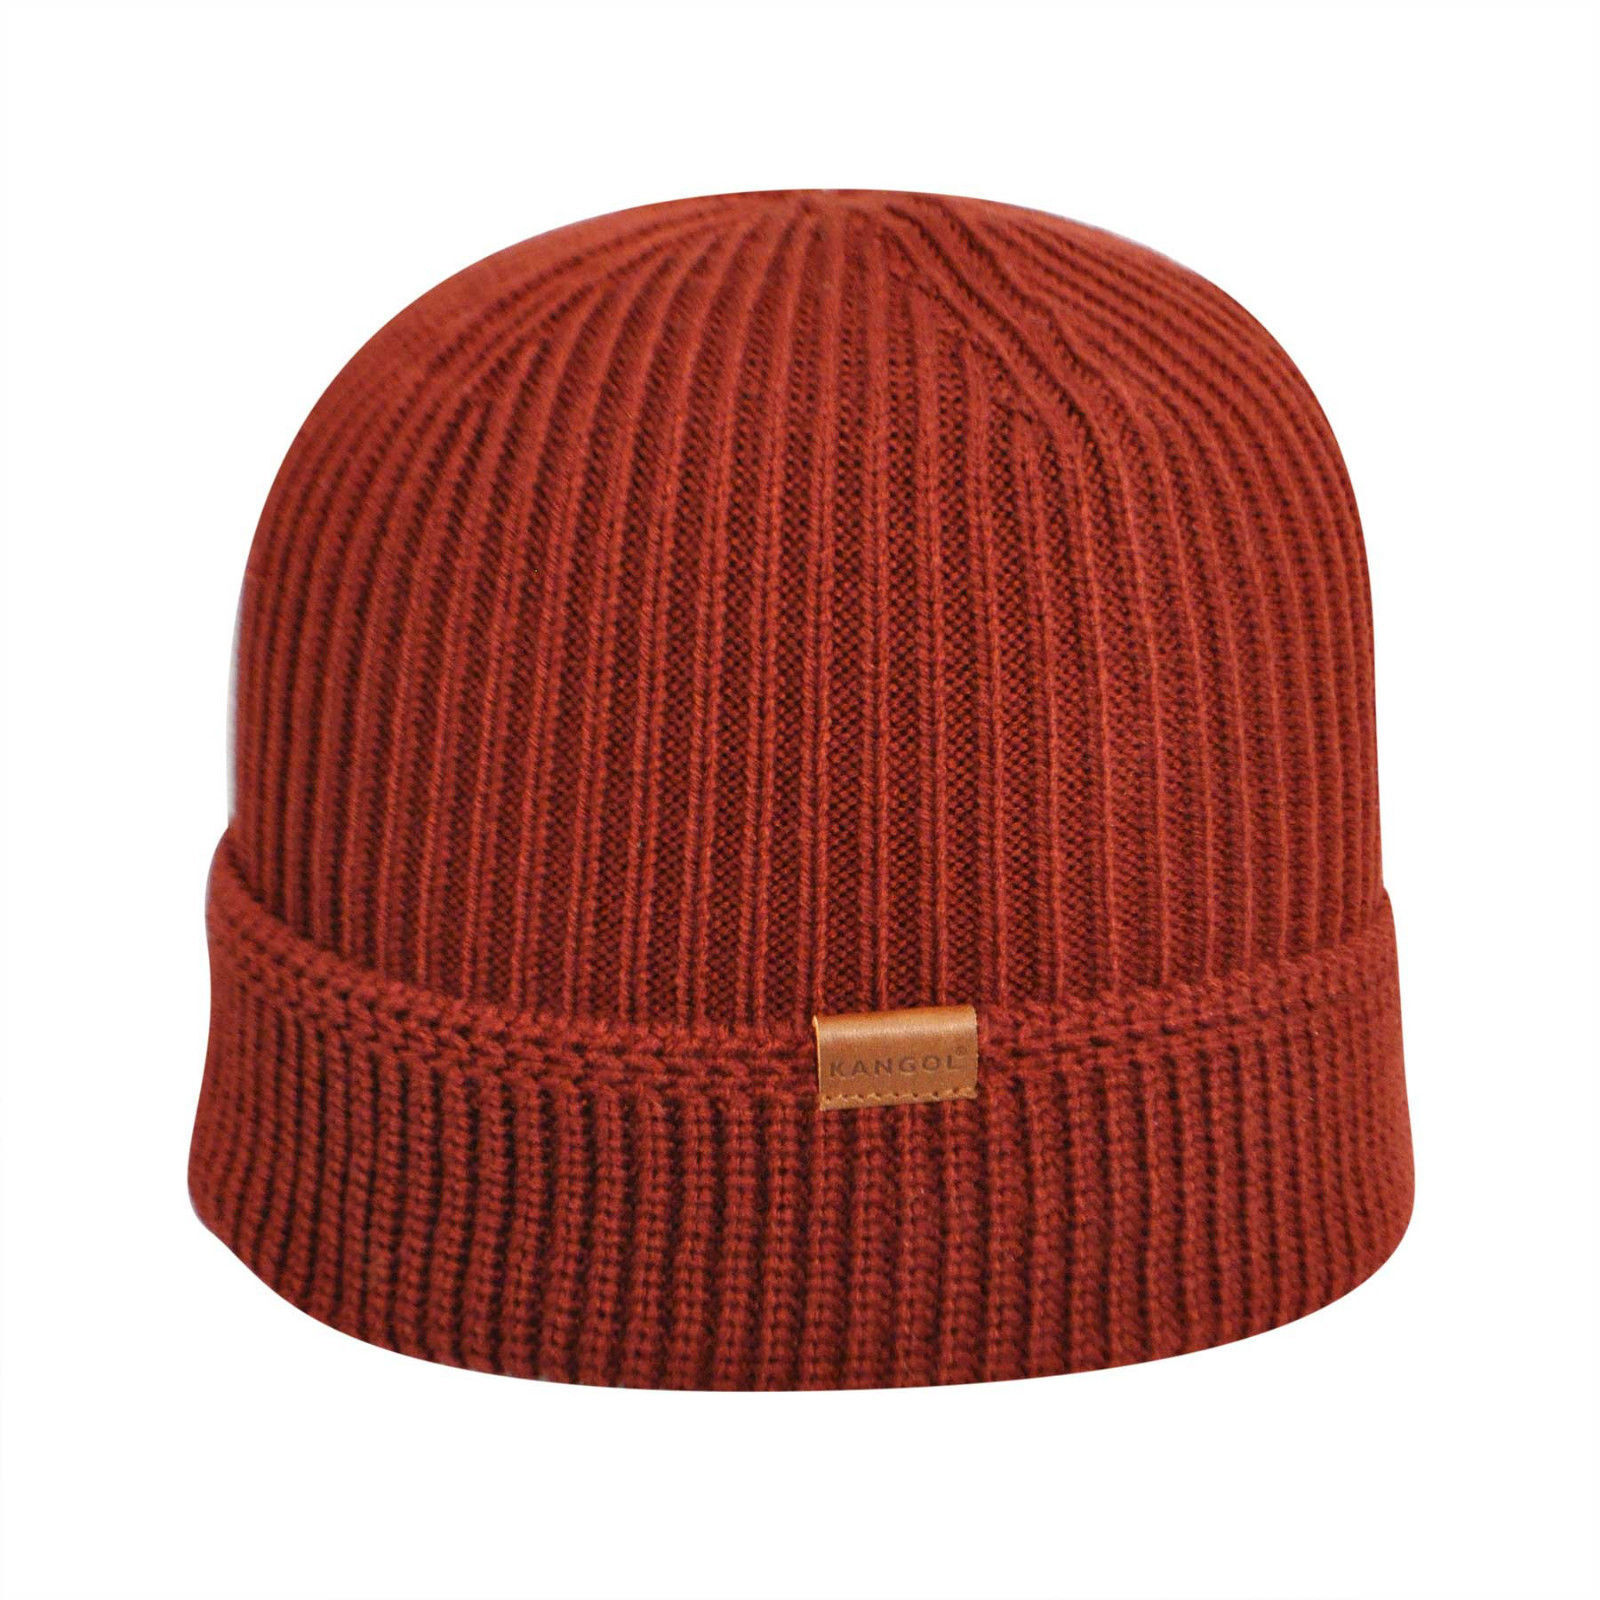 KANGOL-Squad-Fully-Fashioned-Cuff-Pull-On-Beanie-K0702CO-Warm-Winter-Hat-Knitted thumbnail 4